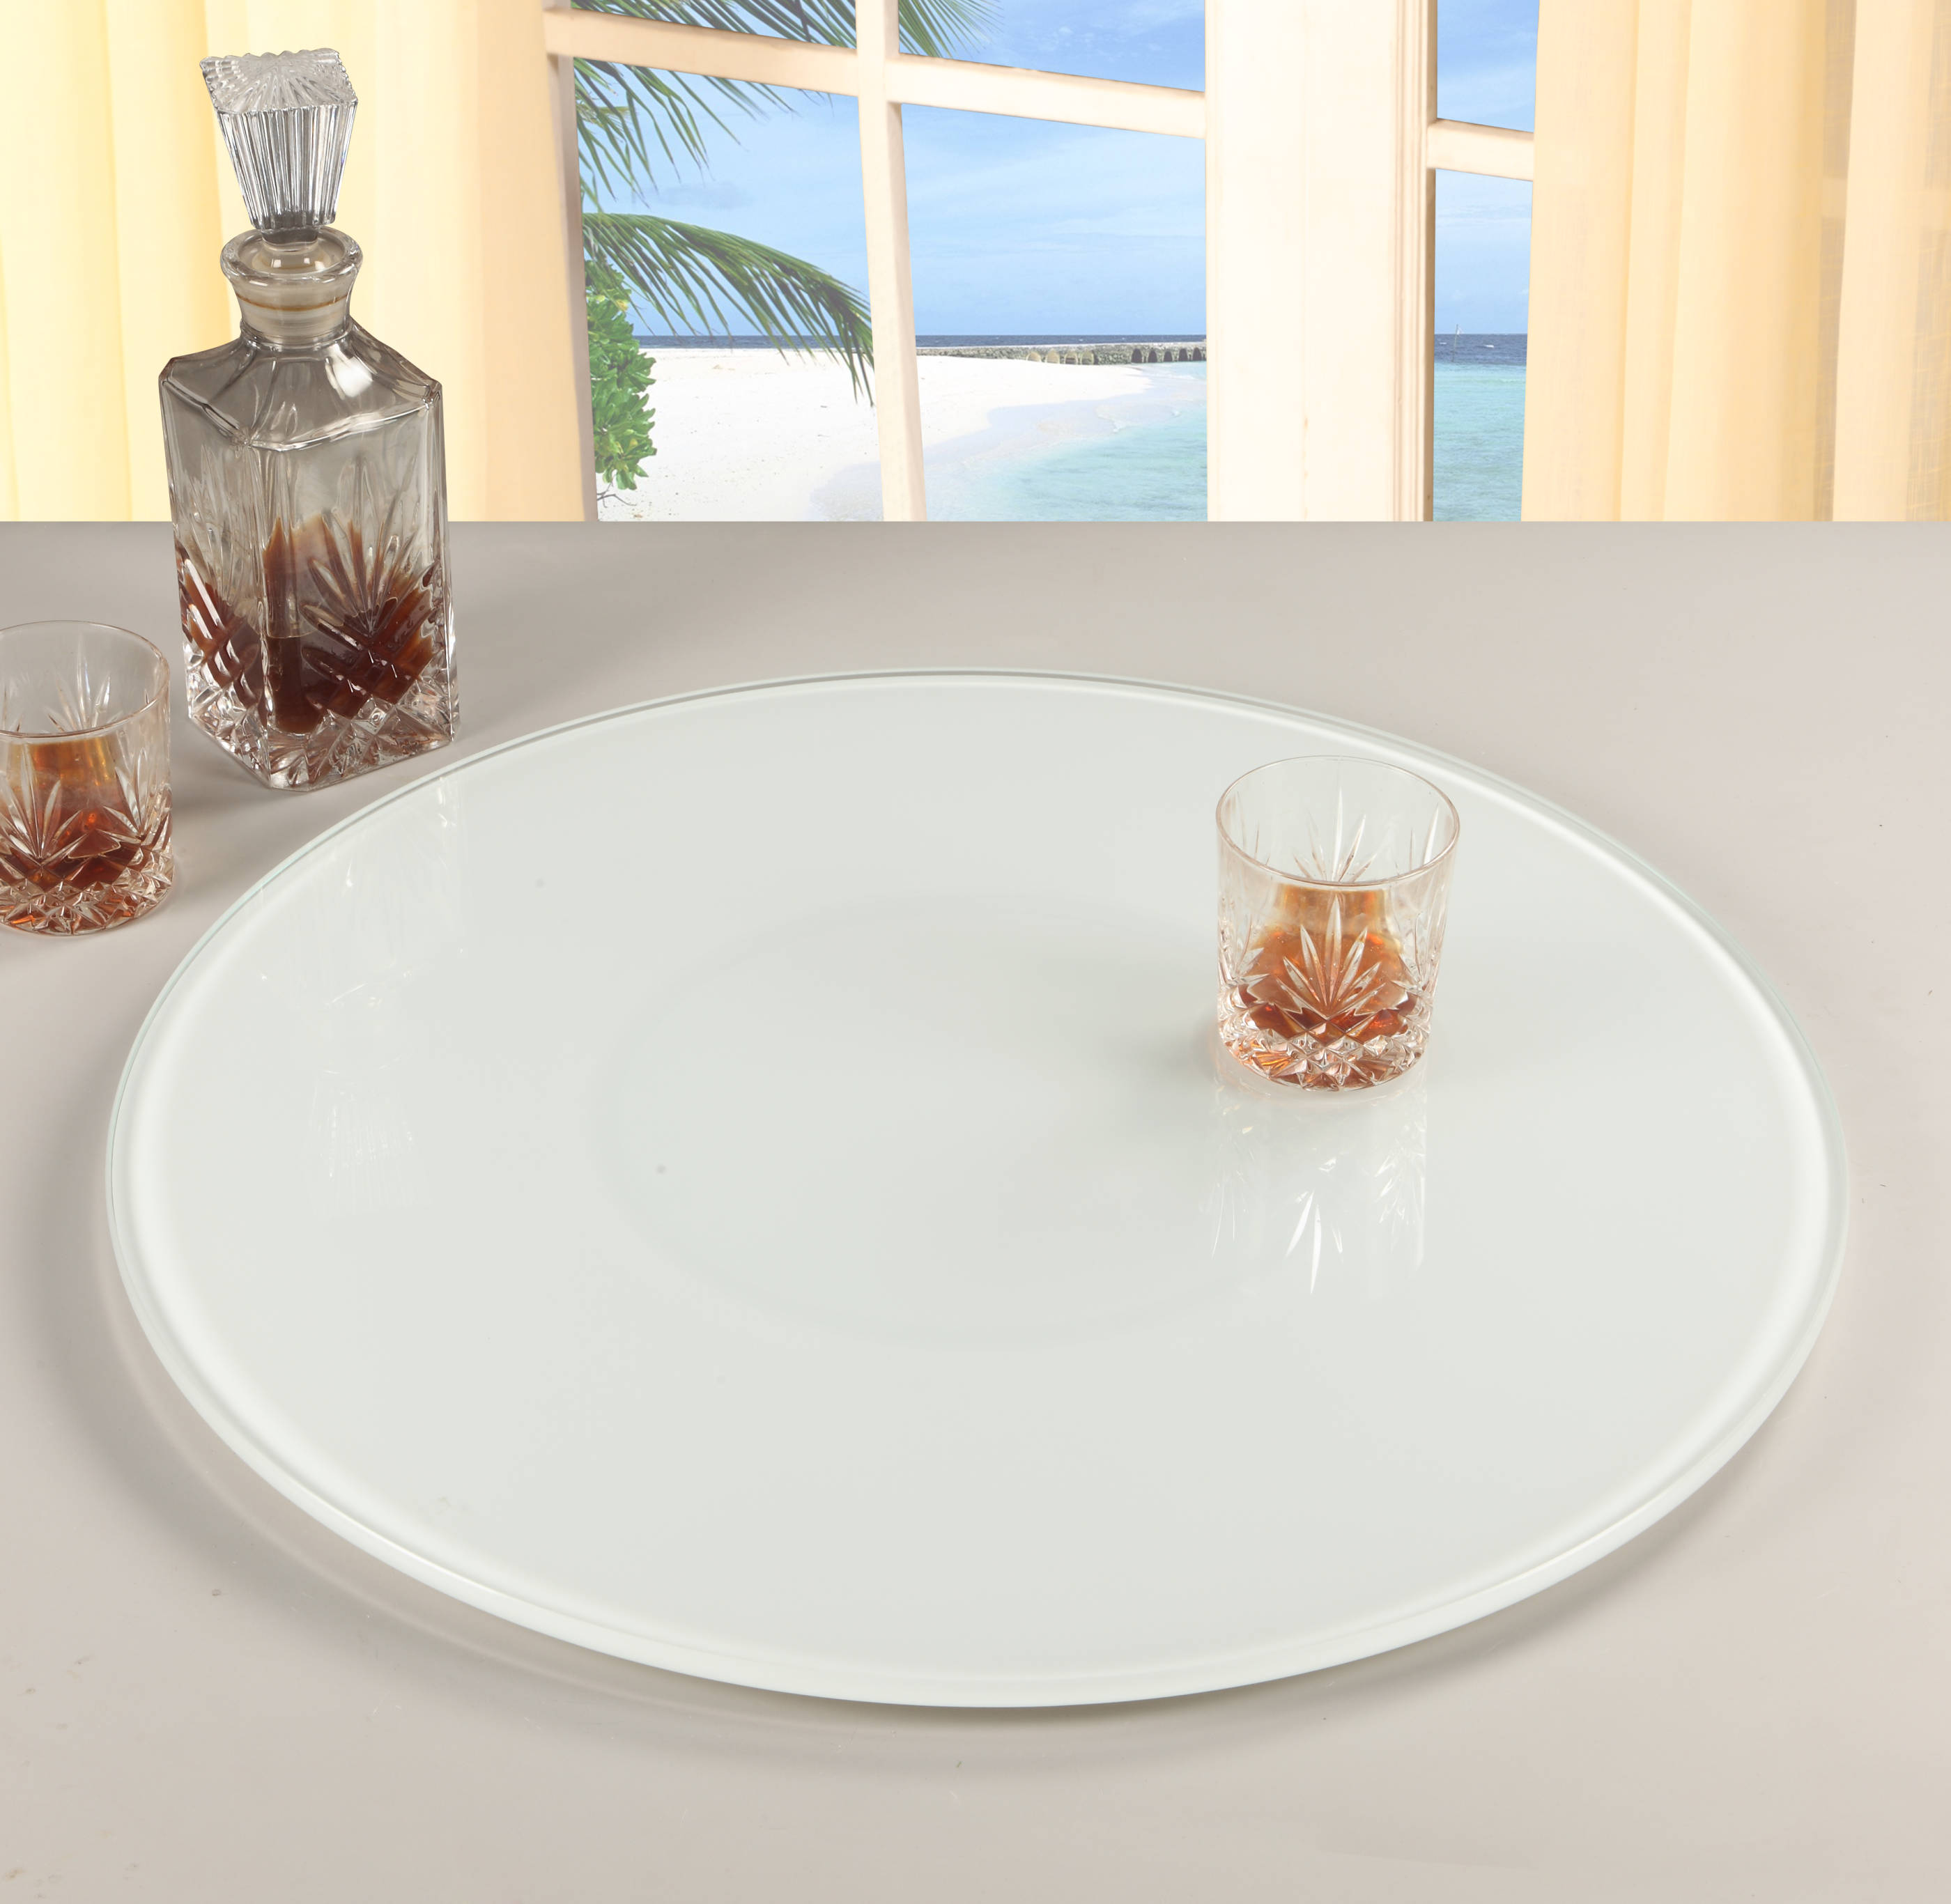 Chintaly Imports Lazy Susan White 24 Inch Round Rotating